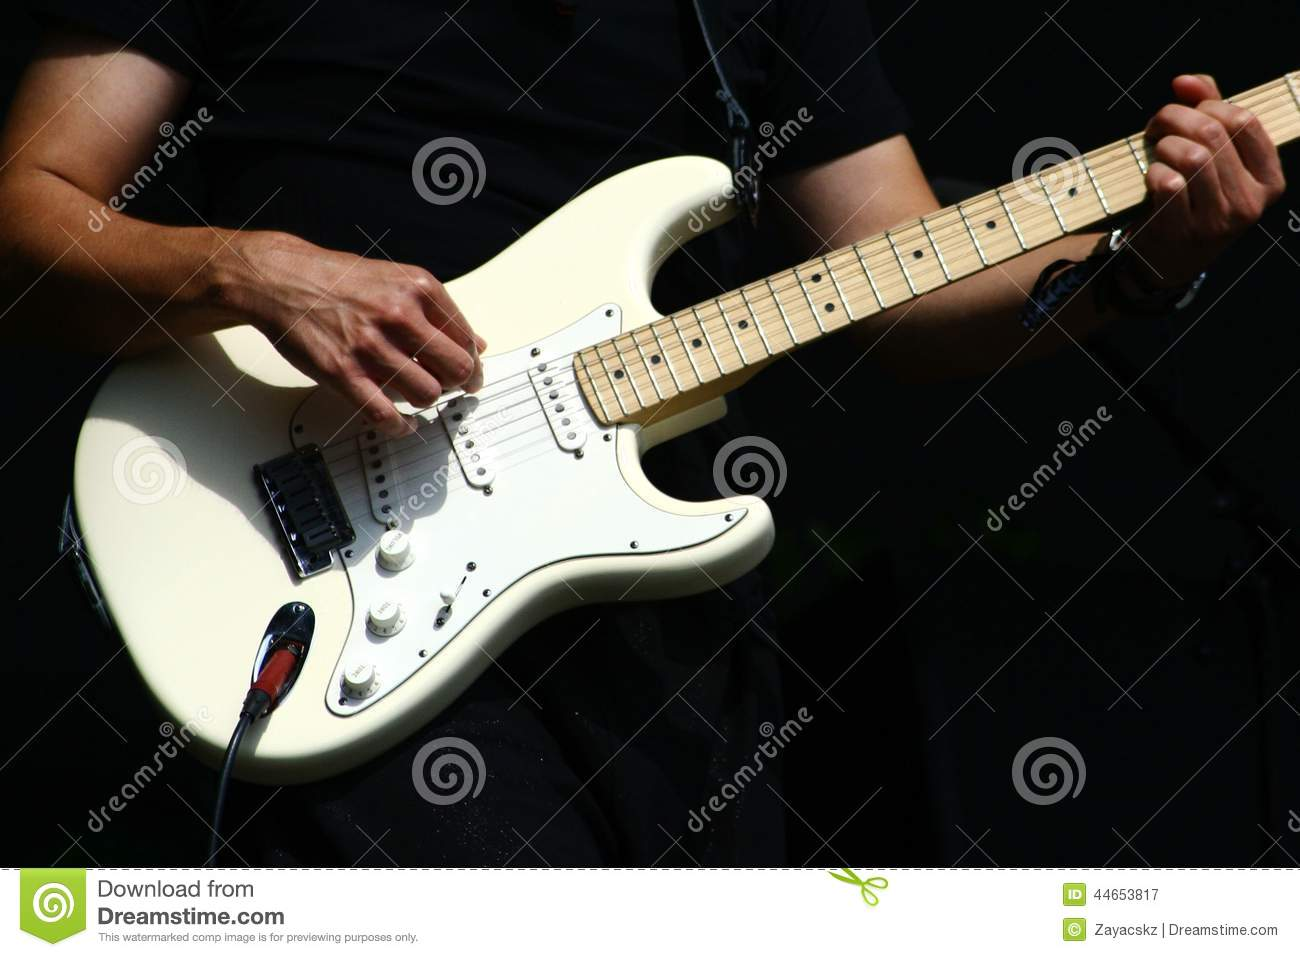 guitar player hands with electric stratocaster type guitar stock image image of drive chords. Black Bedroom Furniture Sets. Home Design Ideas